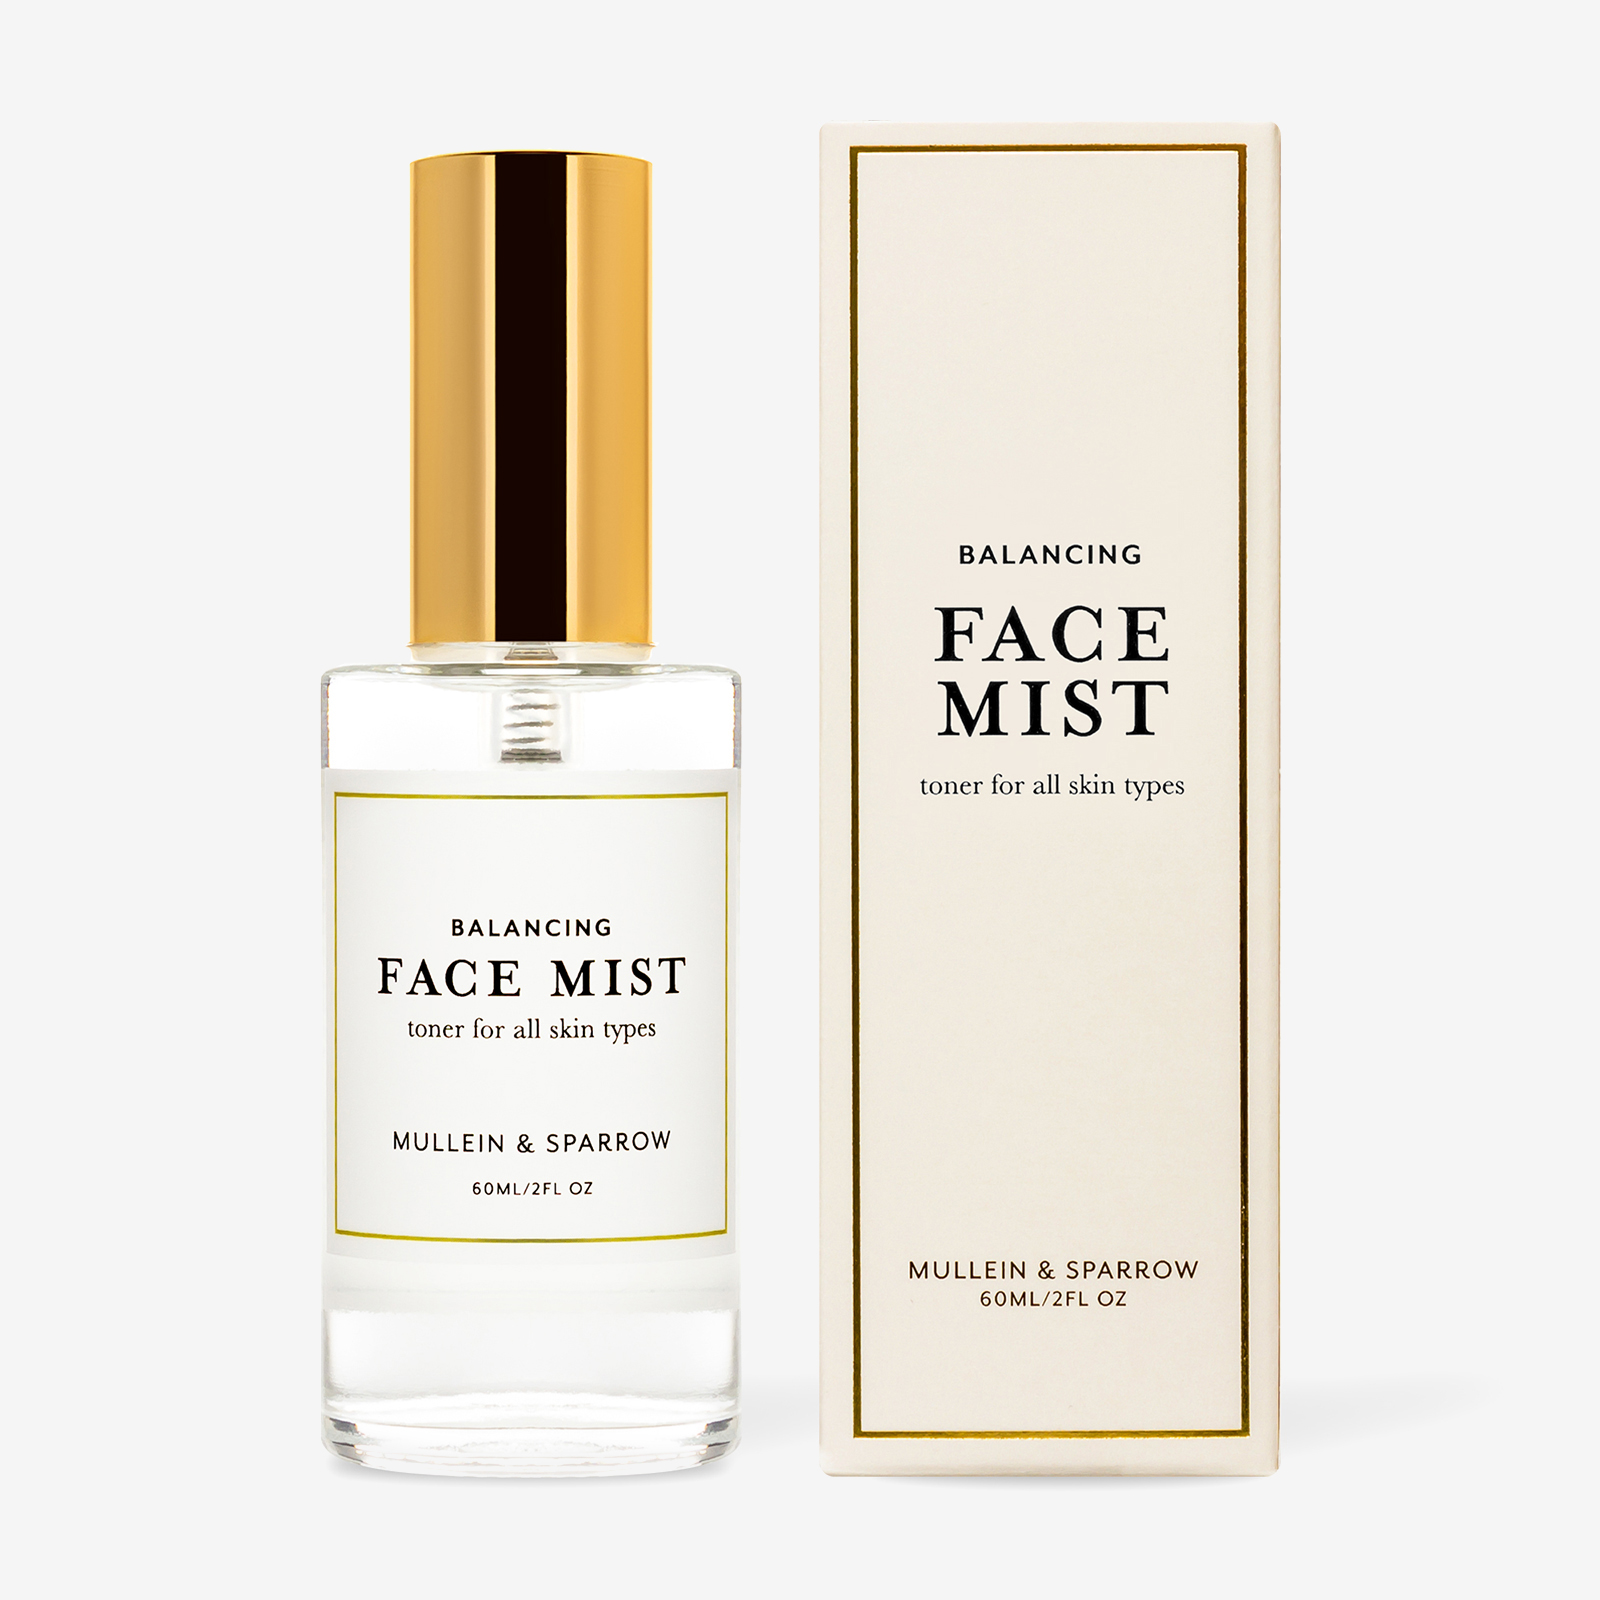 Face mist product photography